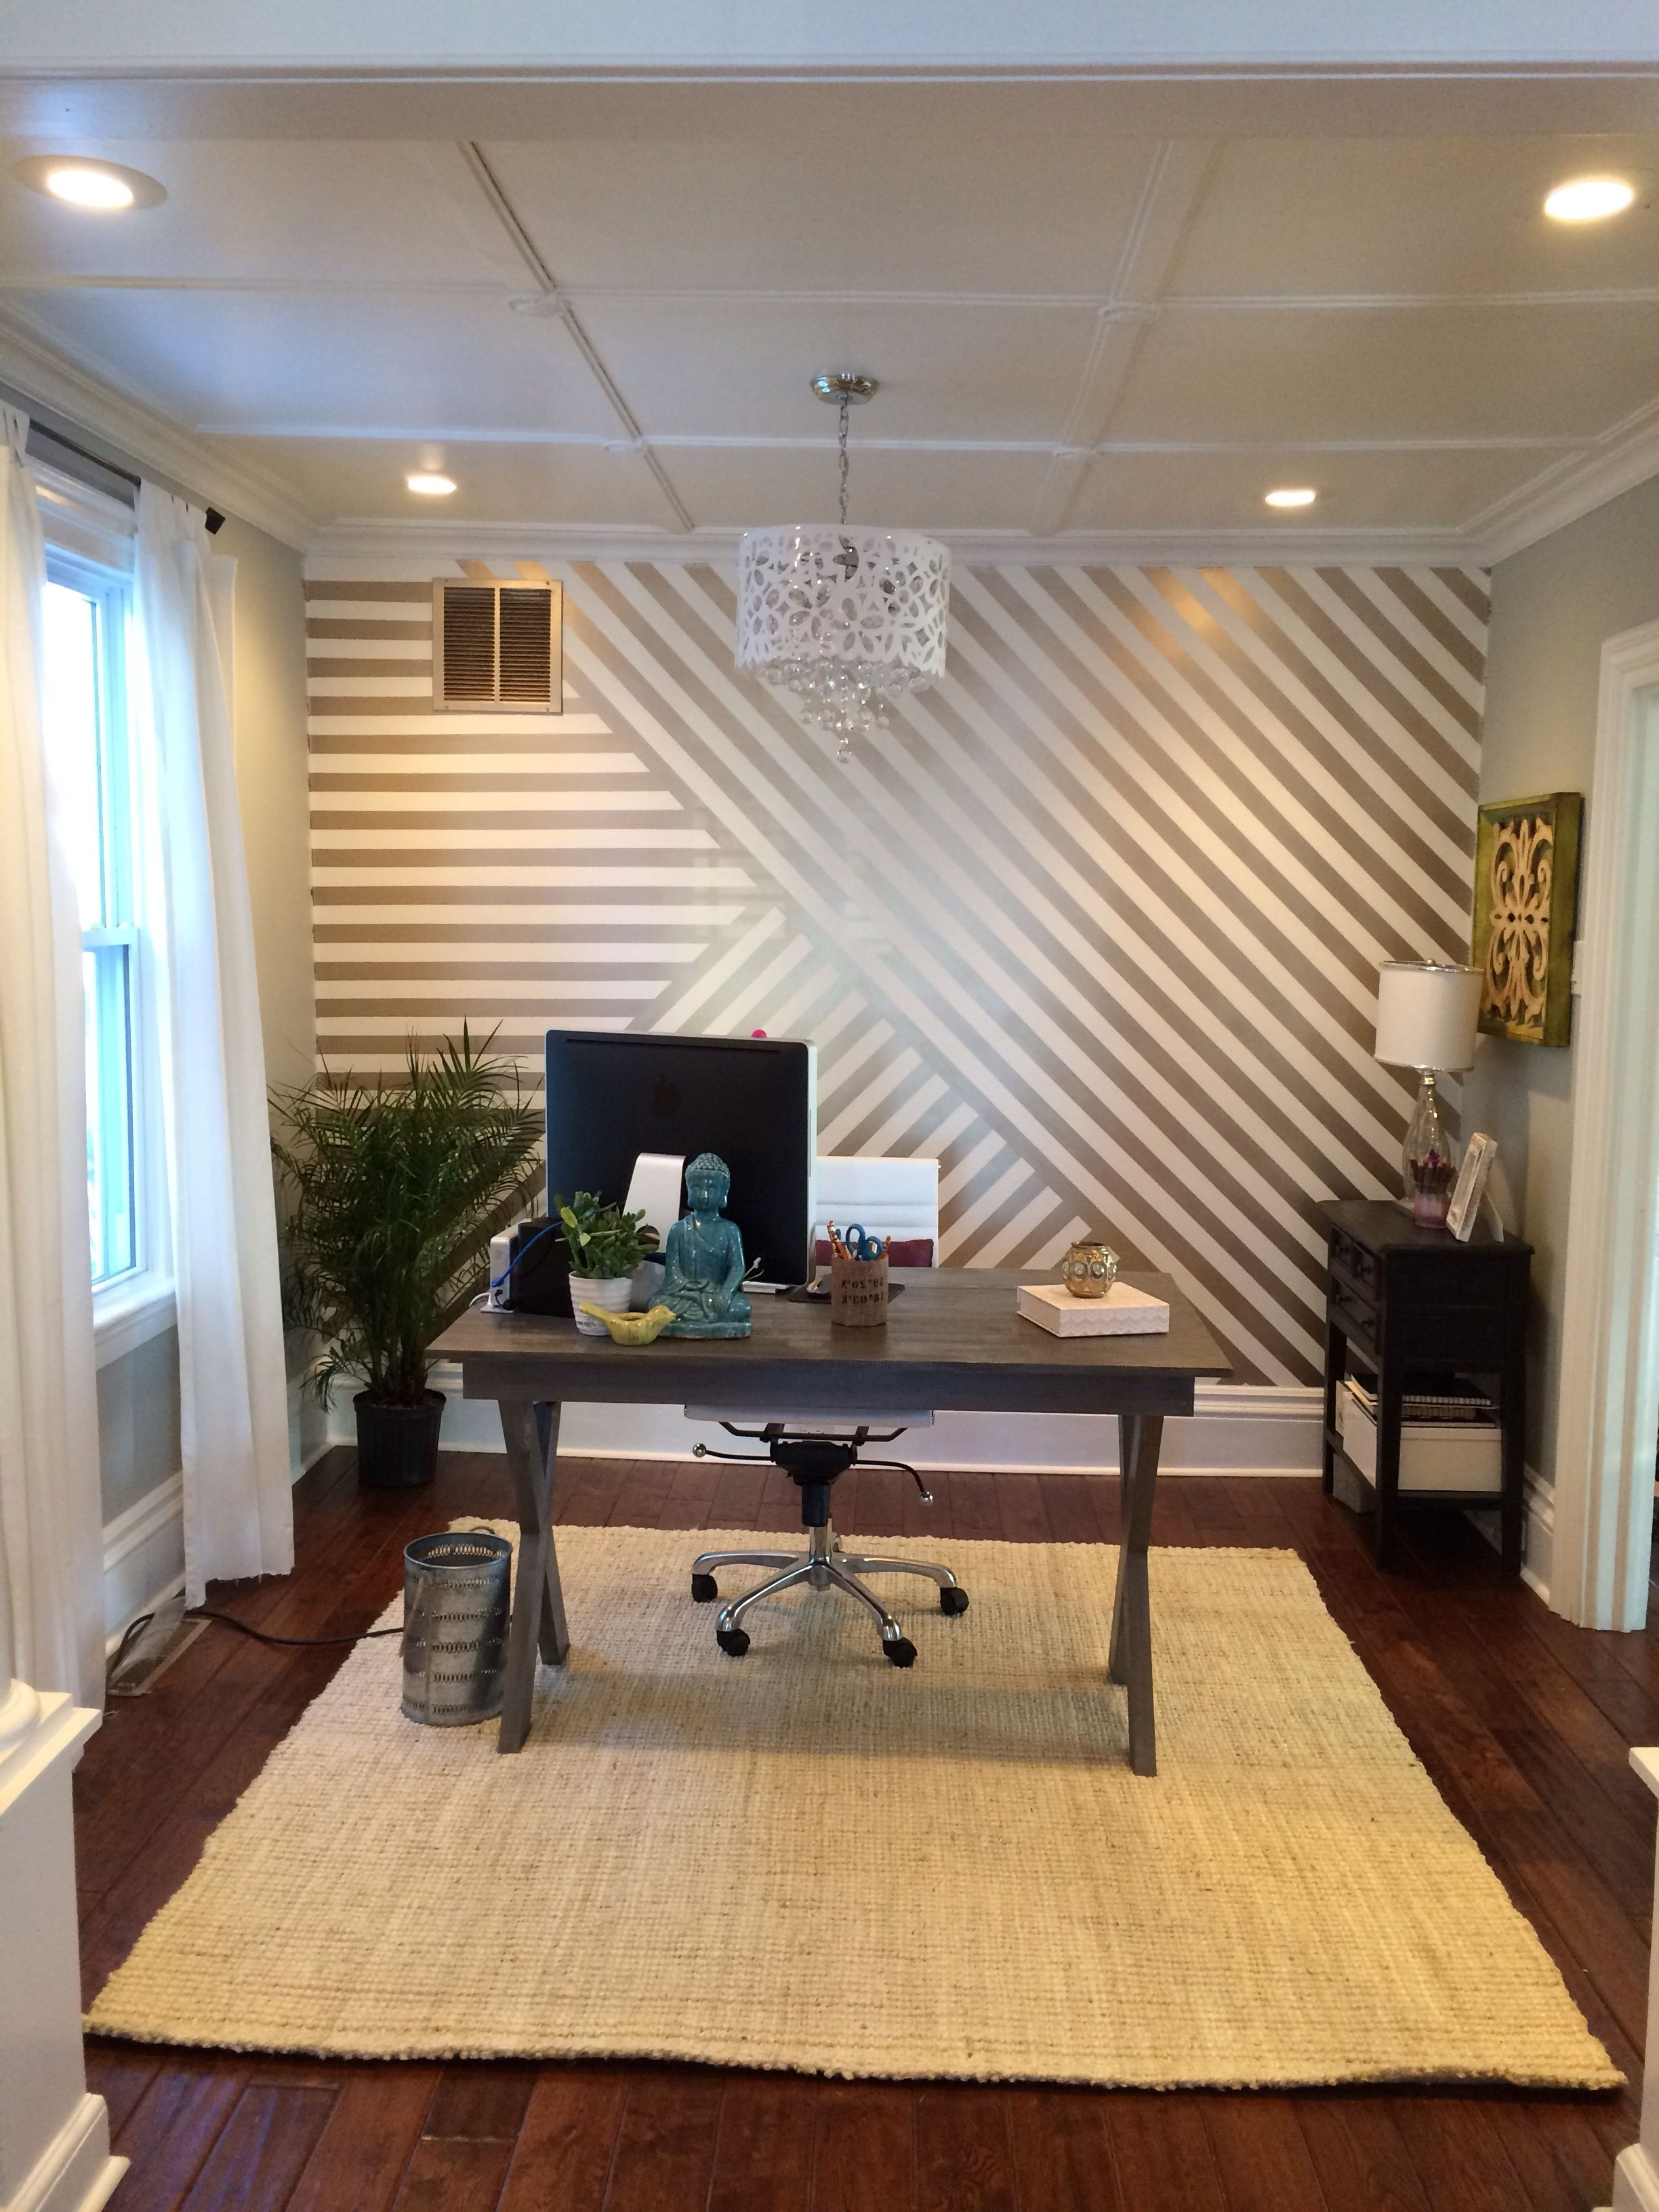 Popular Stripe Wall Accents Intended For 13+ Most Popular Accent Wall Ideas For Your Living Room (View 13 of 15)